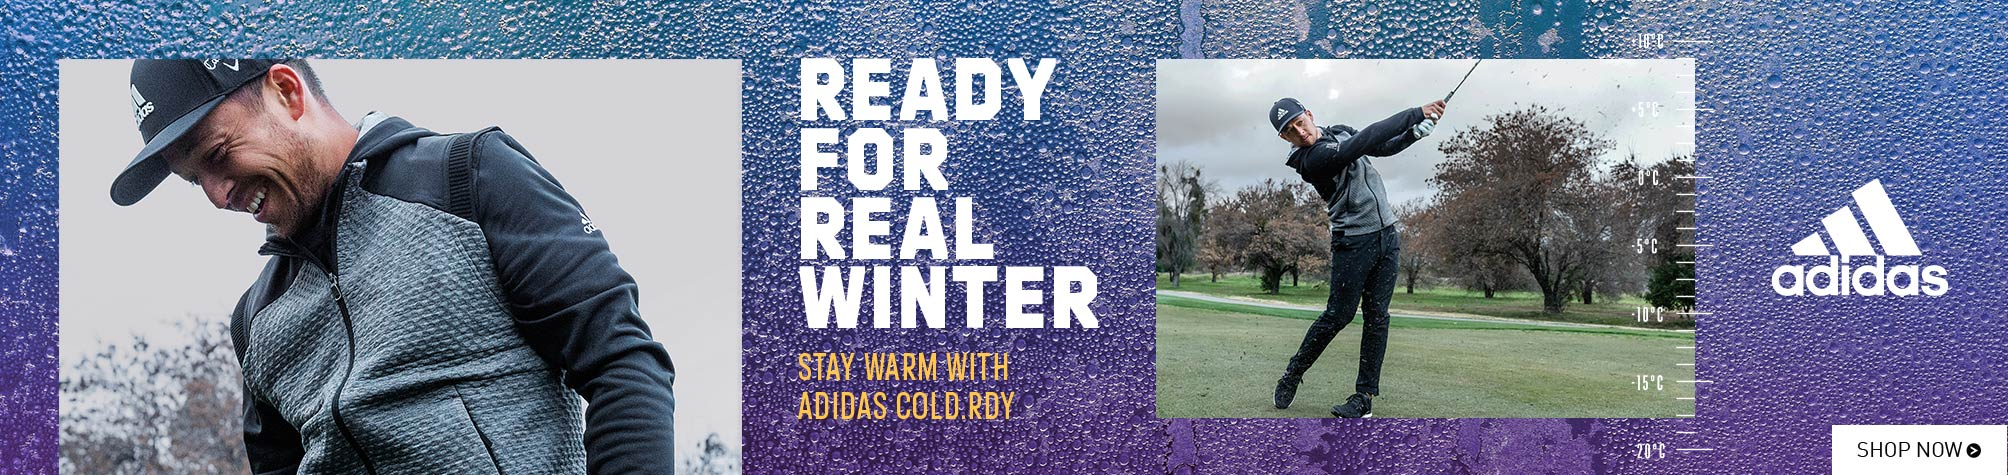 Stay Warm with Adidas Cold.Rdy